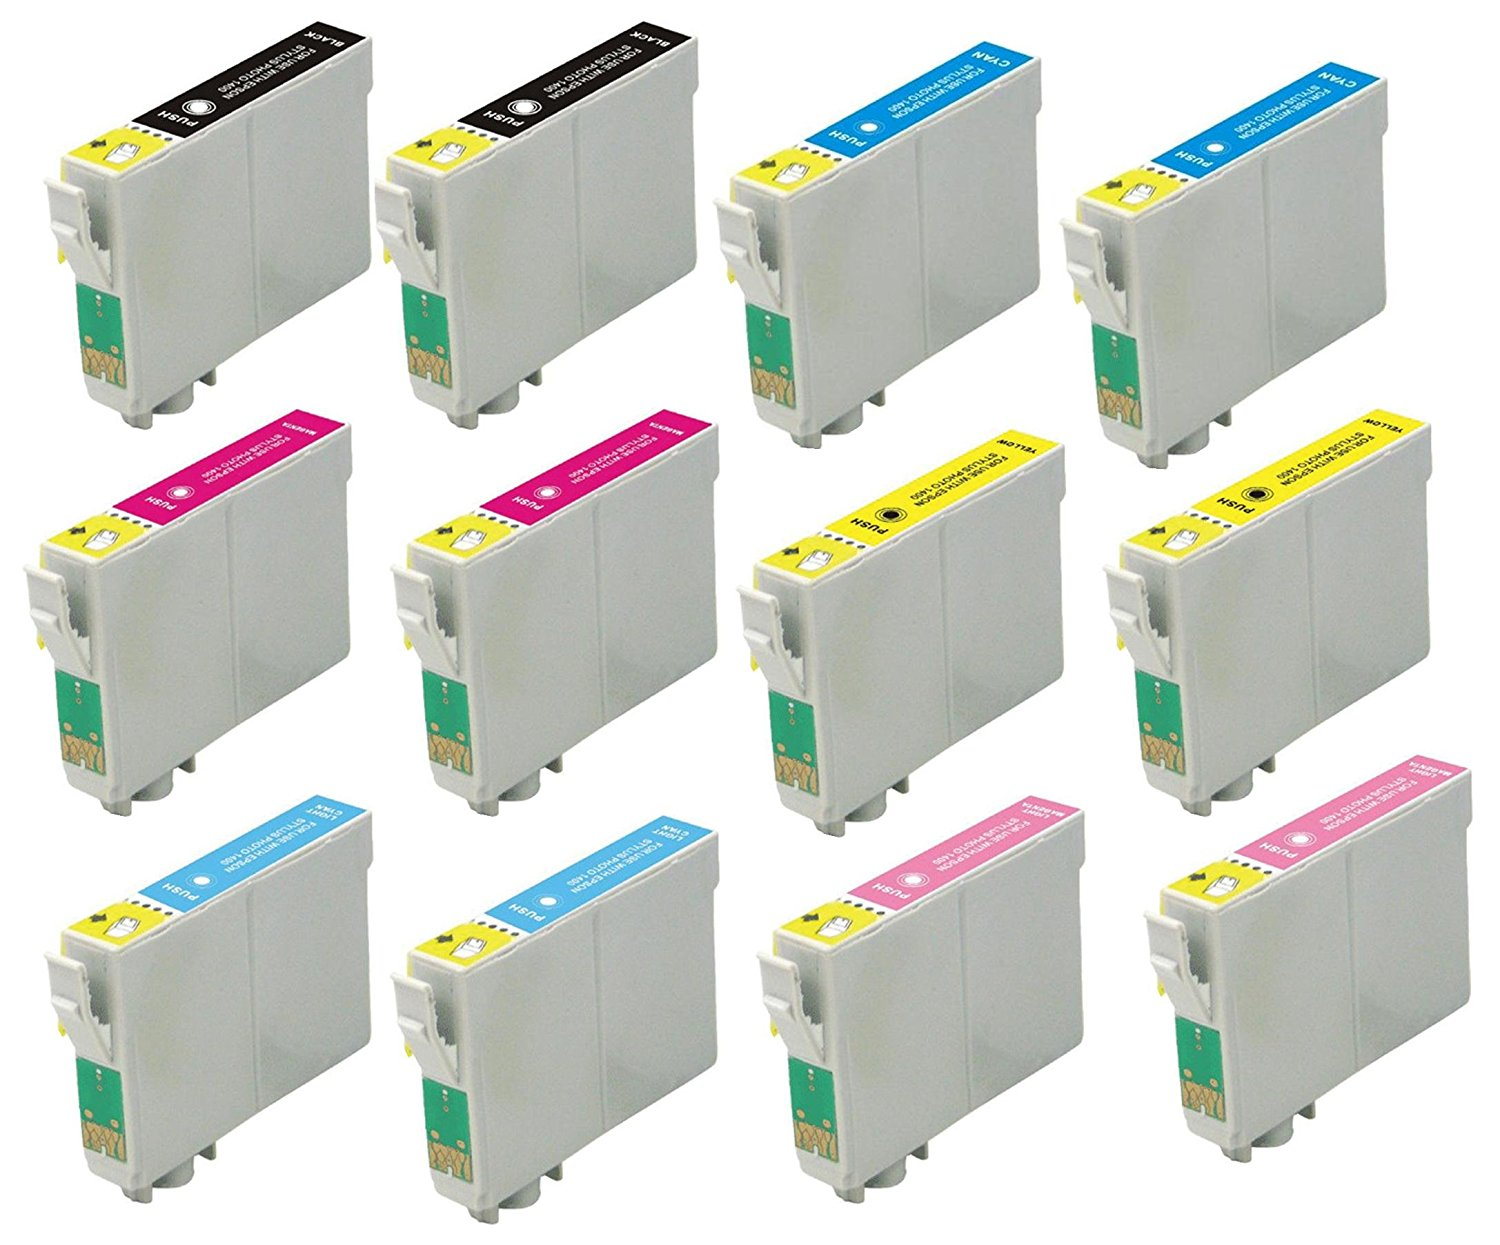 Virtual Outlet ® 12 Pack Remanufactured Inkjet Cartridges for Epson T048 #48, T048120 T048220 T048320 T048420 T048520 T048620 Compatible with Epson Stylus Photo R300, Stylus Photo R300M, Stylus Photo RX500, Stylus Photo R200, Stylus Photo RX600, Stylus Photo R220, Stylus Photo R320, Stylus Photo